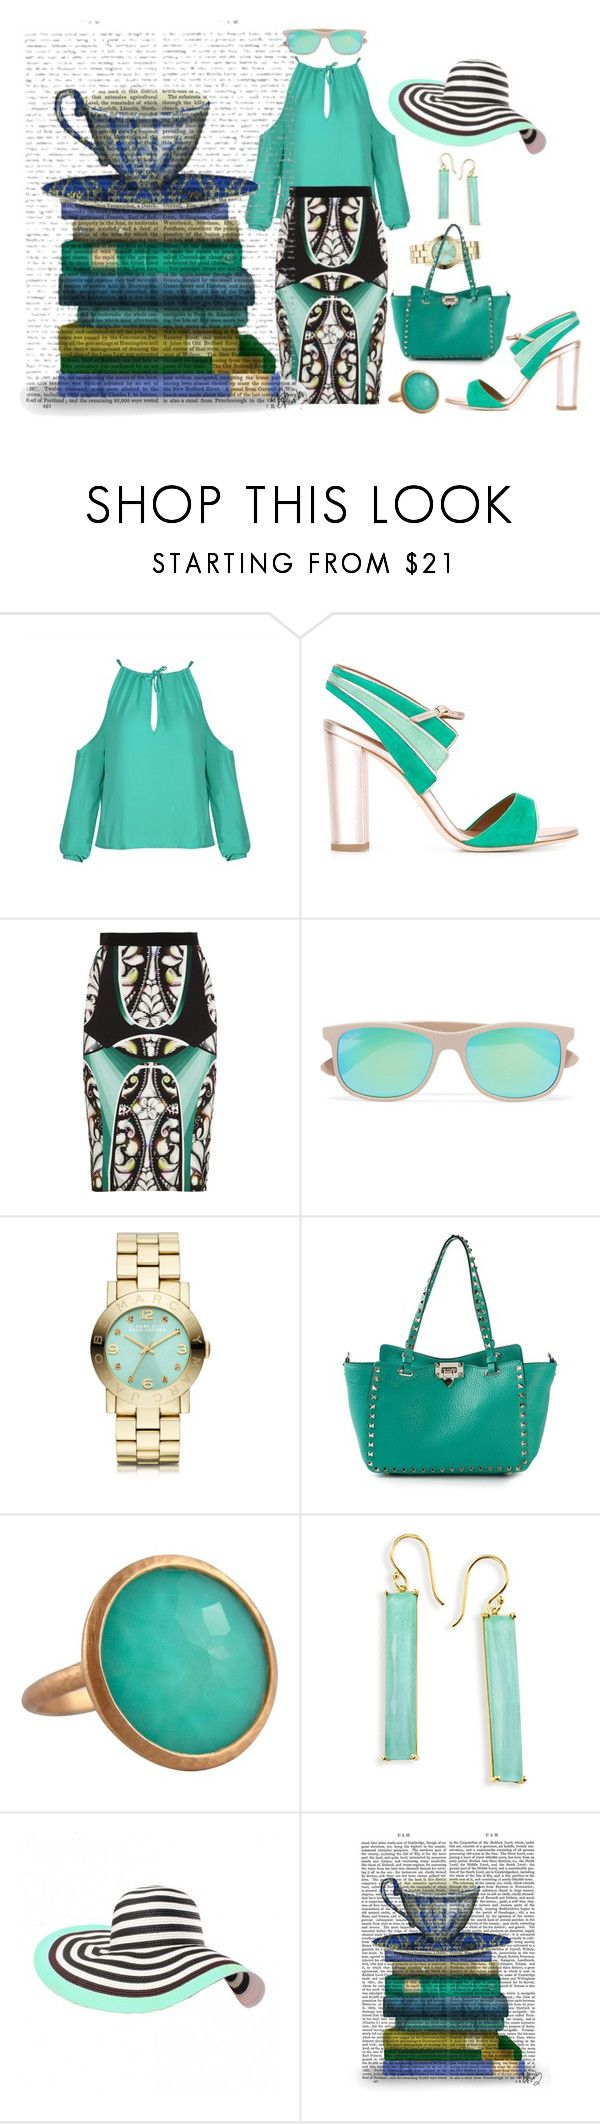 """""""Something wild runs thru his heart when it comes to her"""" by blujay1126 ❤ liked on Polyvore featuring Malone Souliers, Peter Pilotto, Ray-Ban, Marc by Marc Jacobs, Valentino, Jona, Ippolita and FabFunky"""